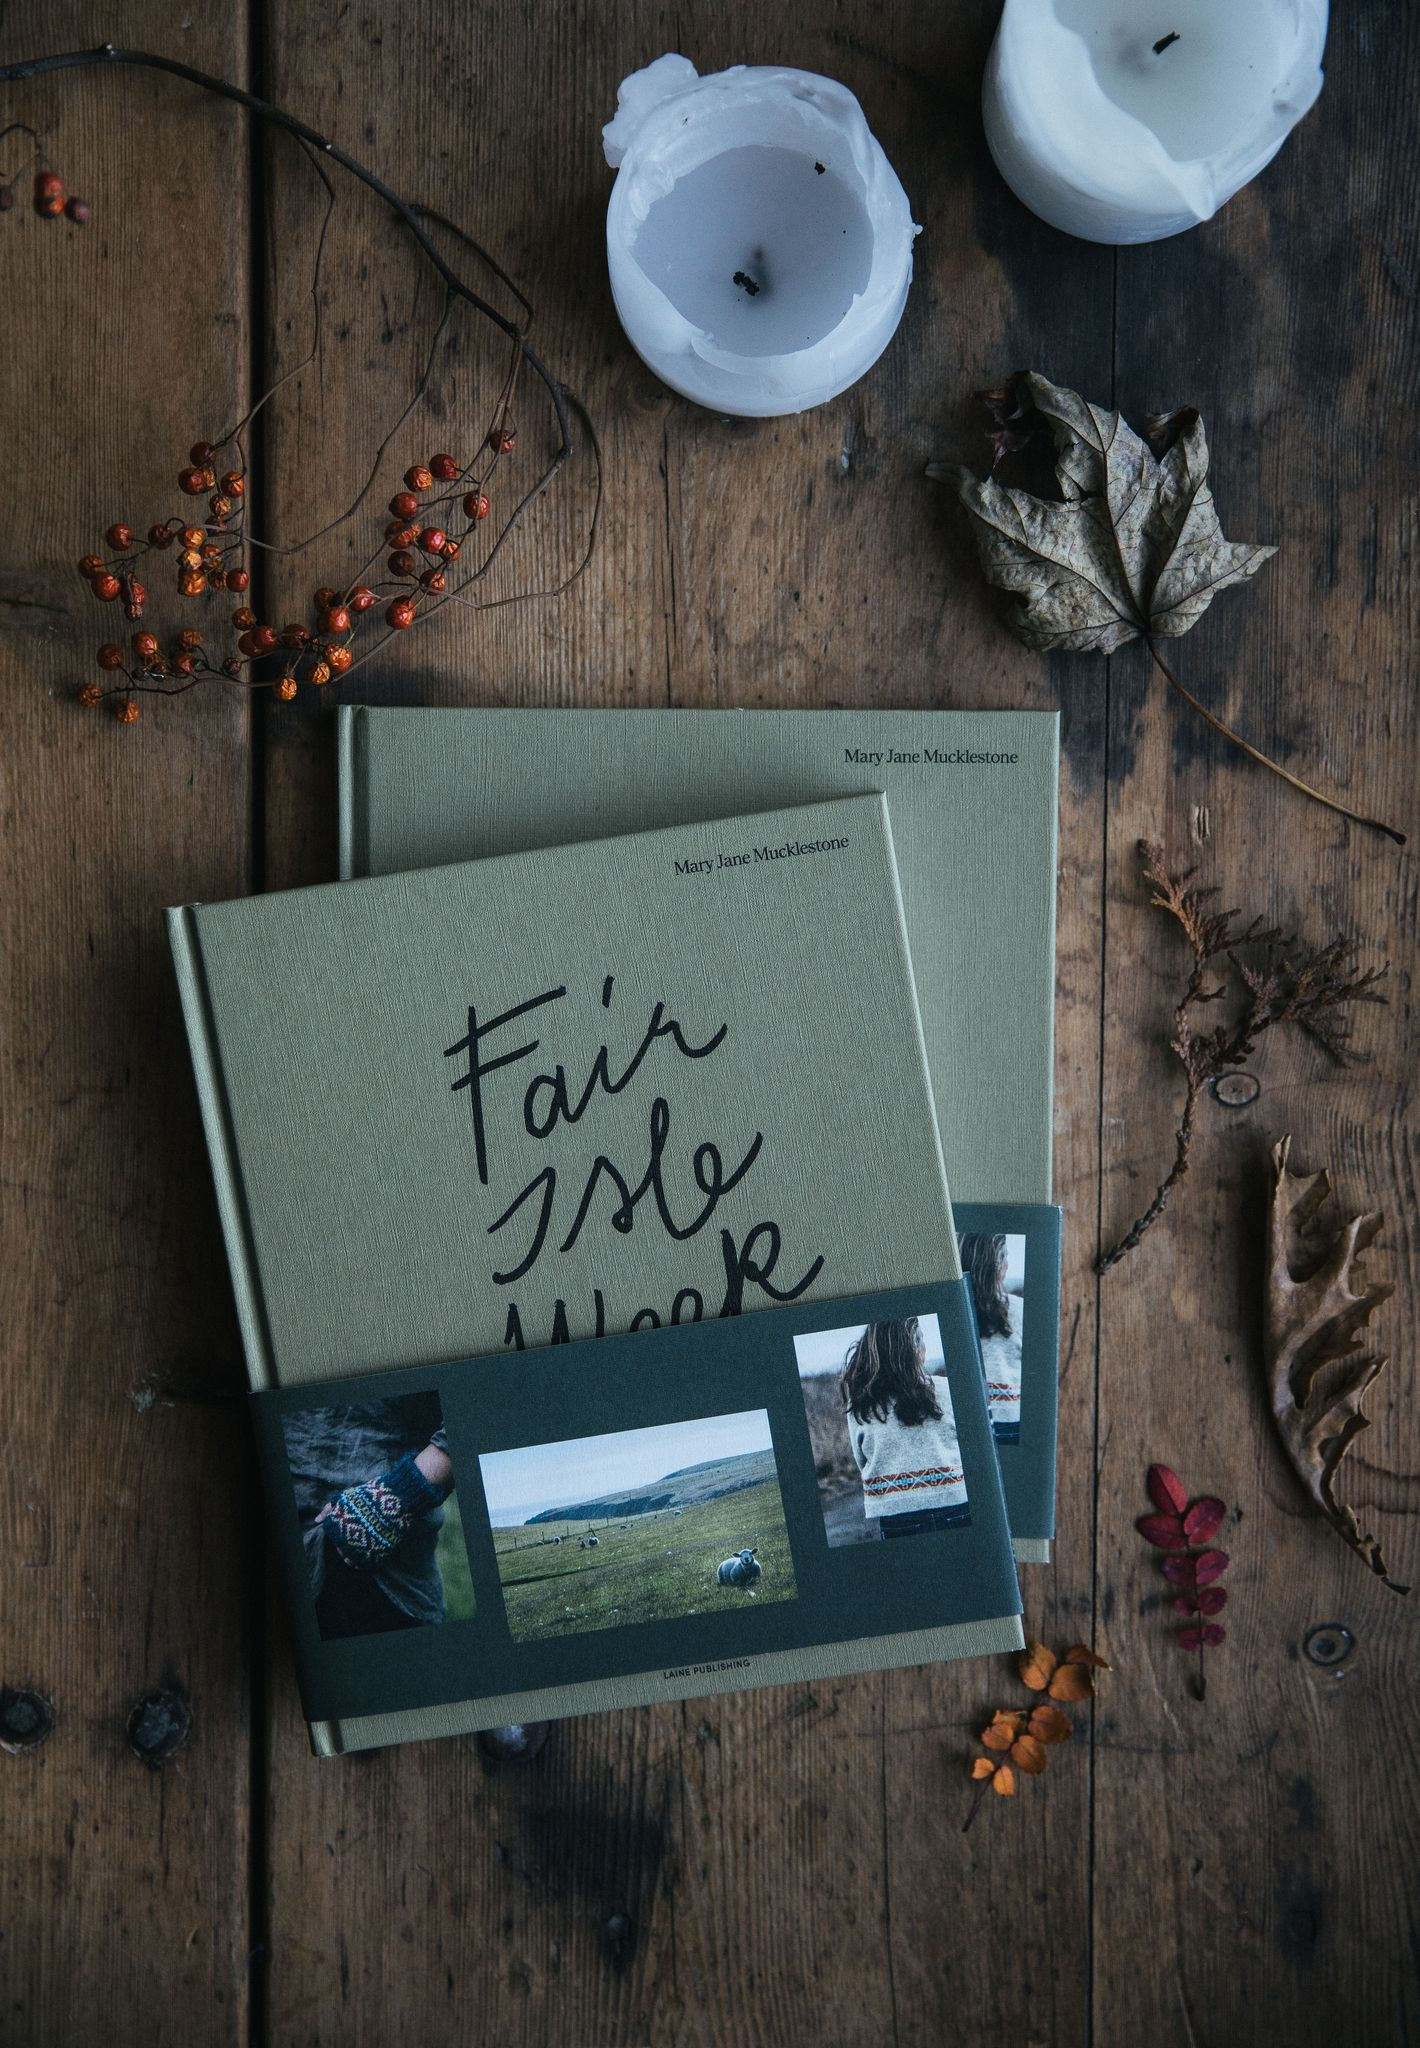 Fair Isle Weekend Book by Mary Jane Mucklestone